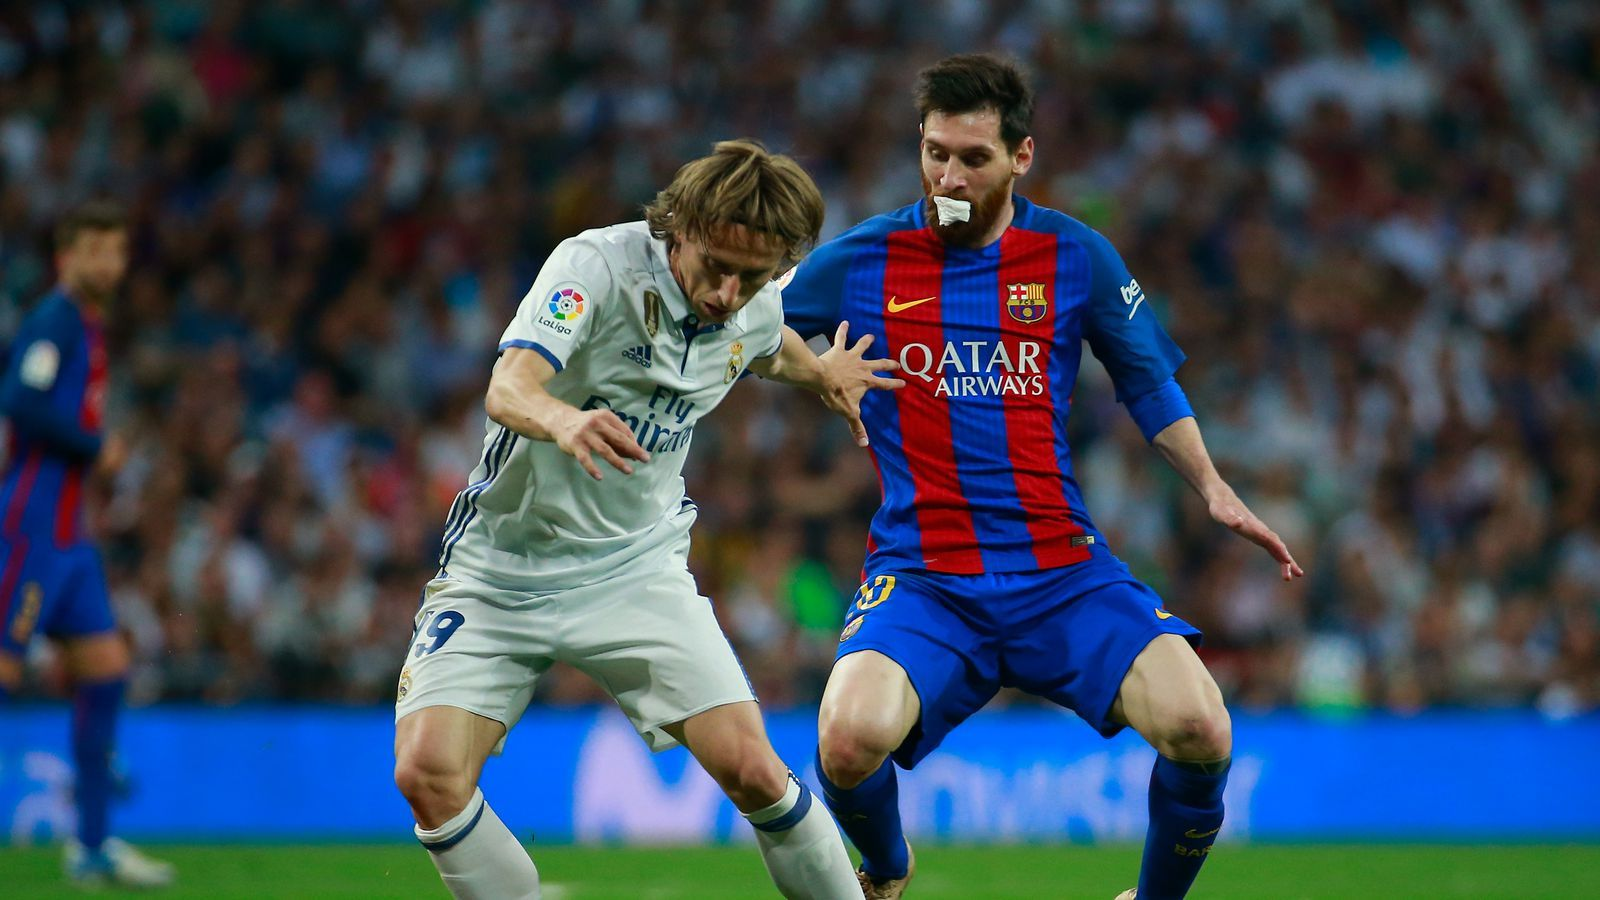 Supercopa De Espana 2nd Leg Barcelona Vs Real Madrid Luka Modric